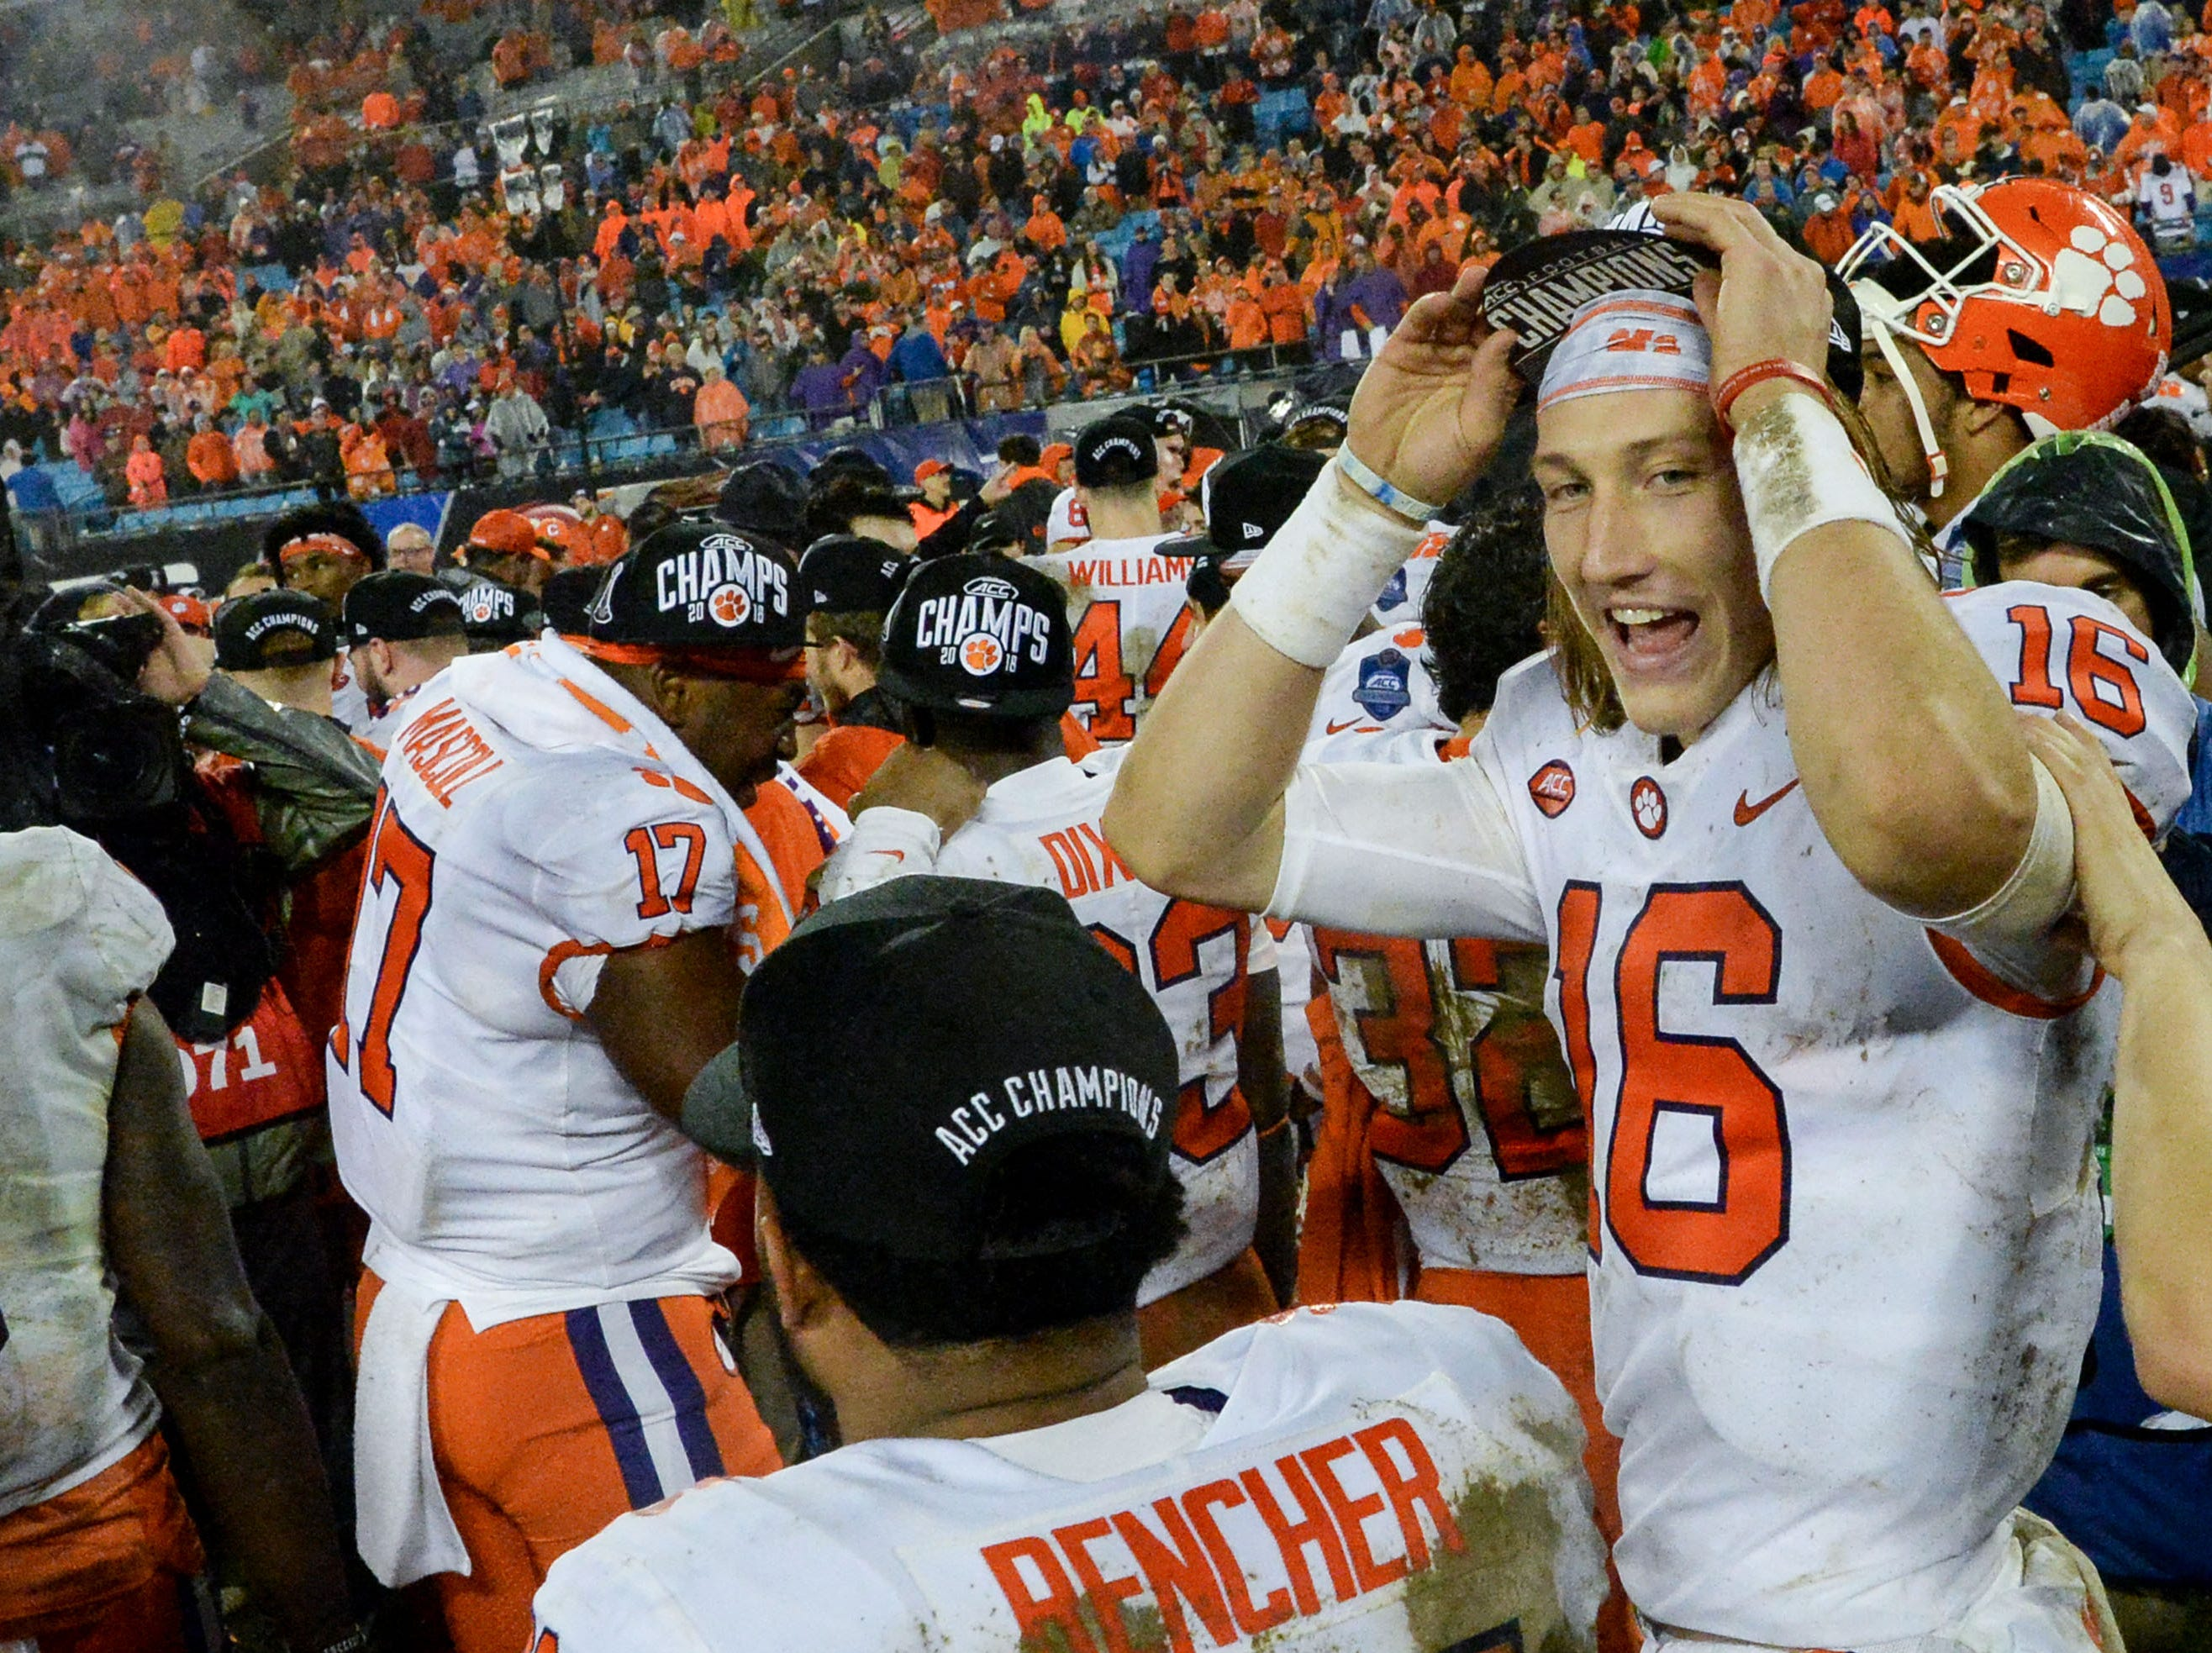 Clemson quarterback Trevor Lawrence (16) and teammates celebrate after the game at the Dr. Pepper ACC football championship at Bank of America Stadium in Charlotte, N.C. on Saturday, December 1, 2018.